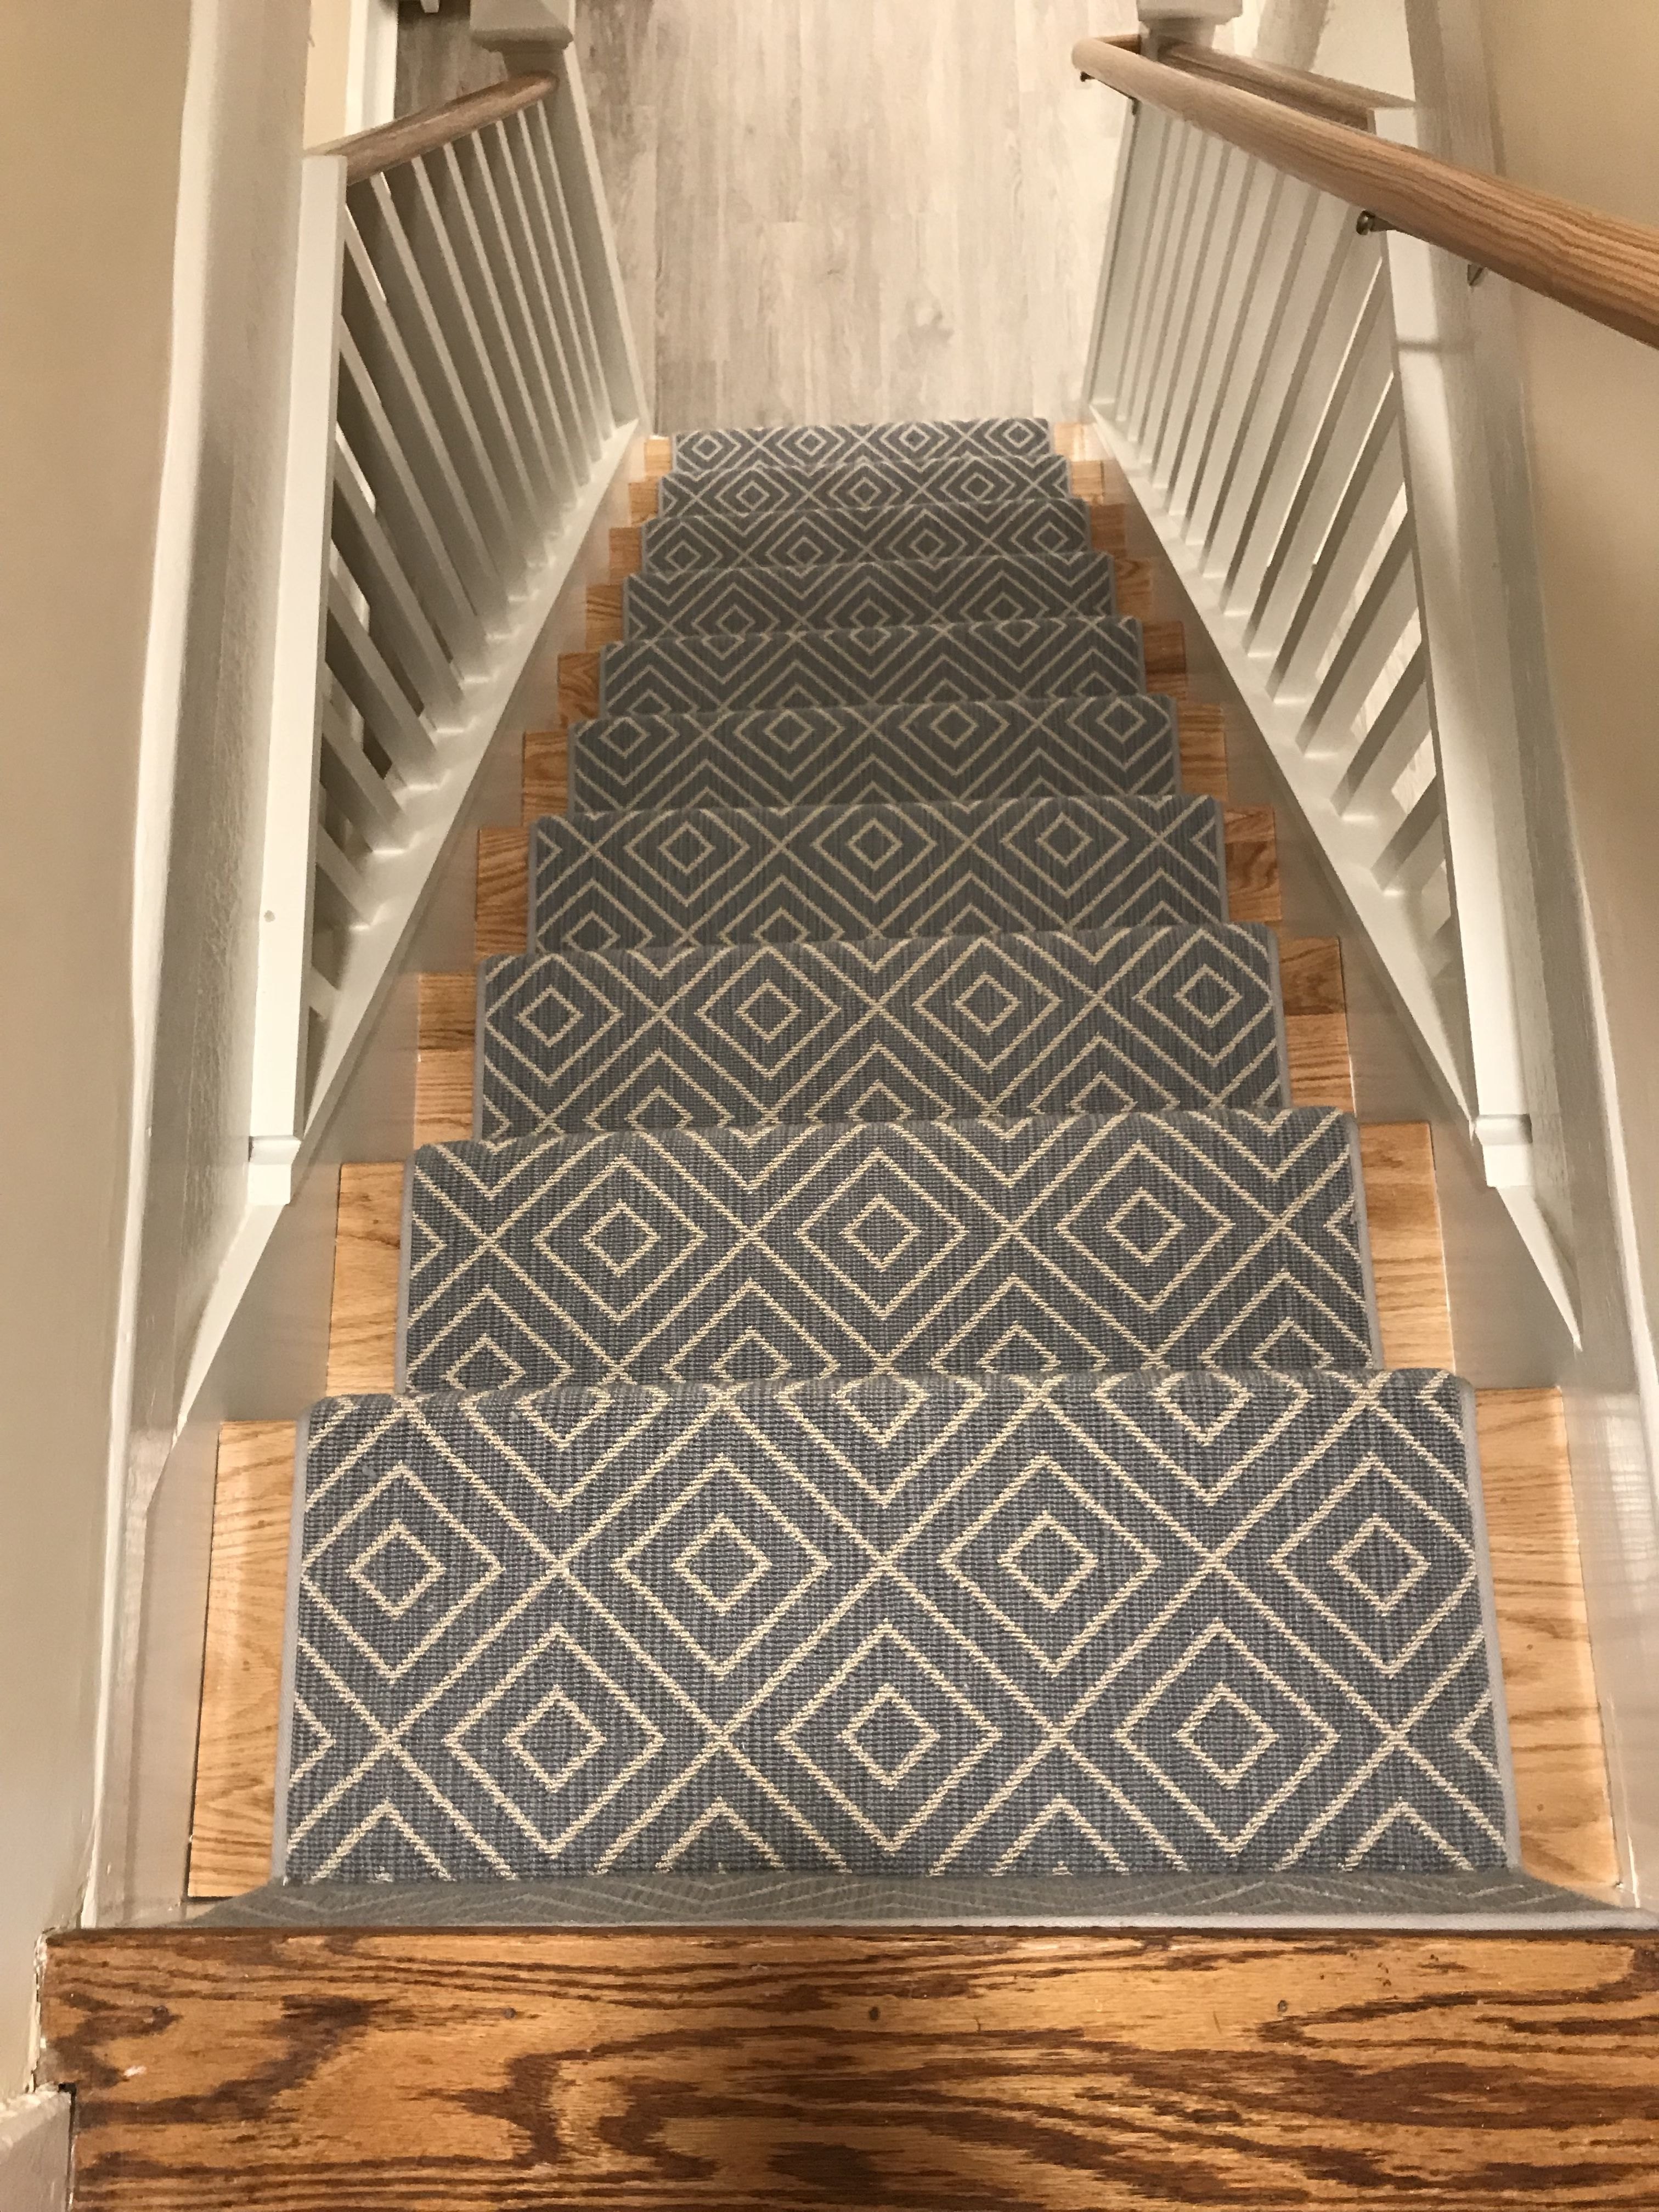 Pin By The Carpet Workroom On Geometric Stair Runners Rugs Geometric Stair Runner Stair Rugs Stair Runner